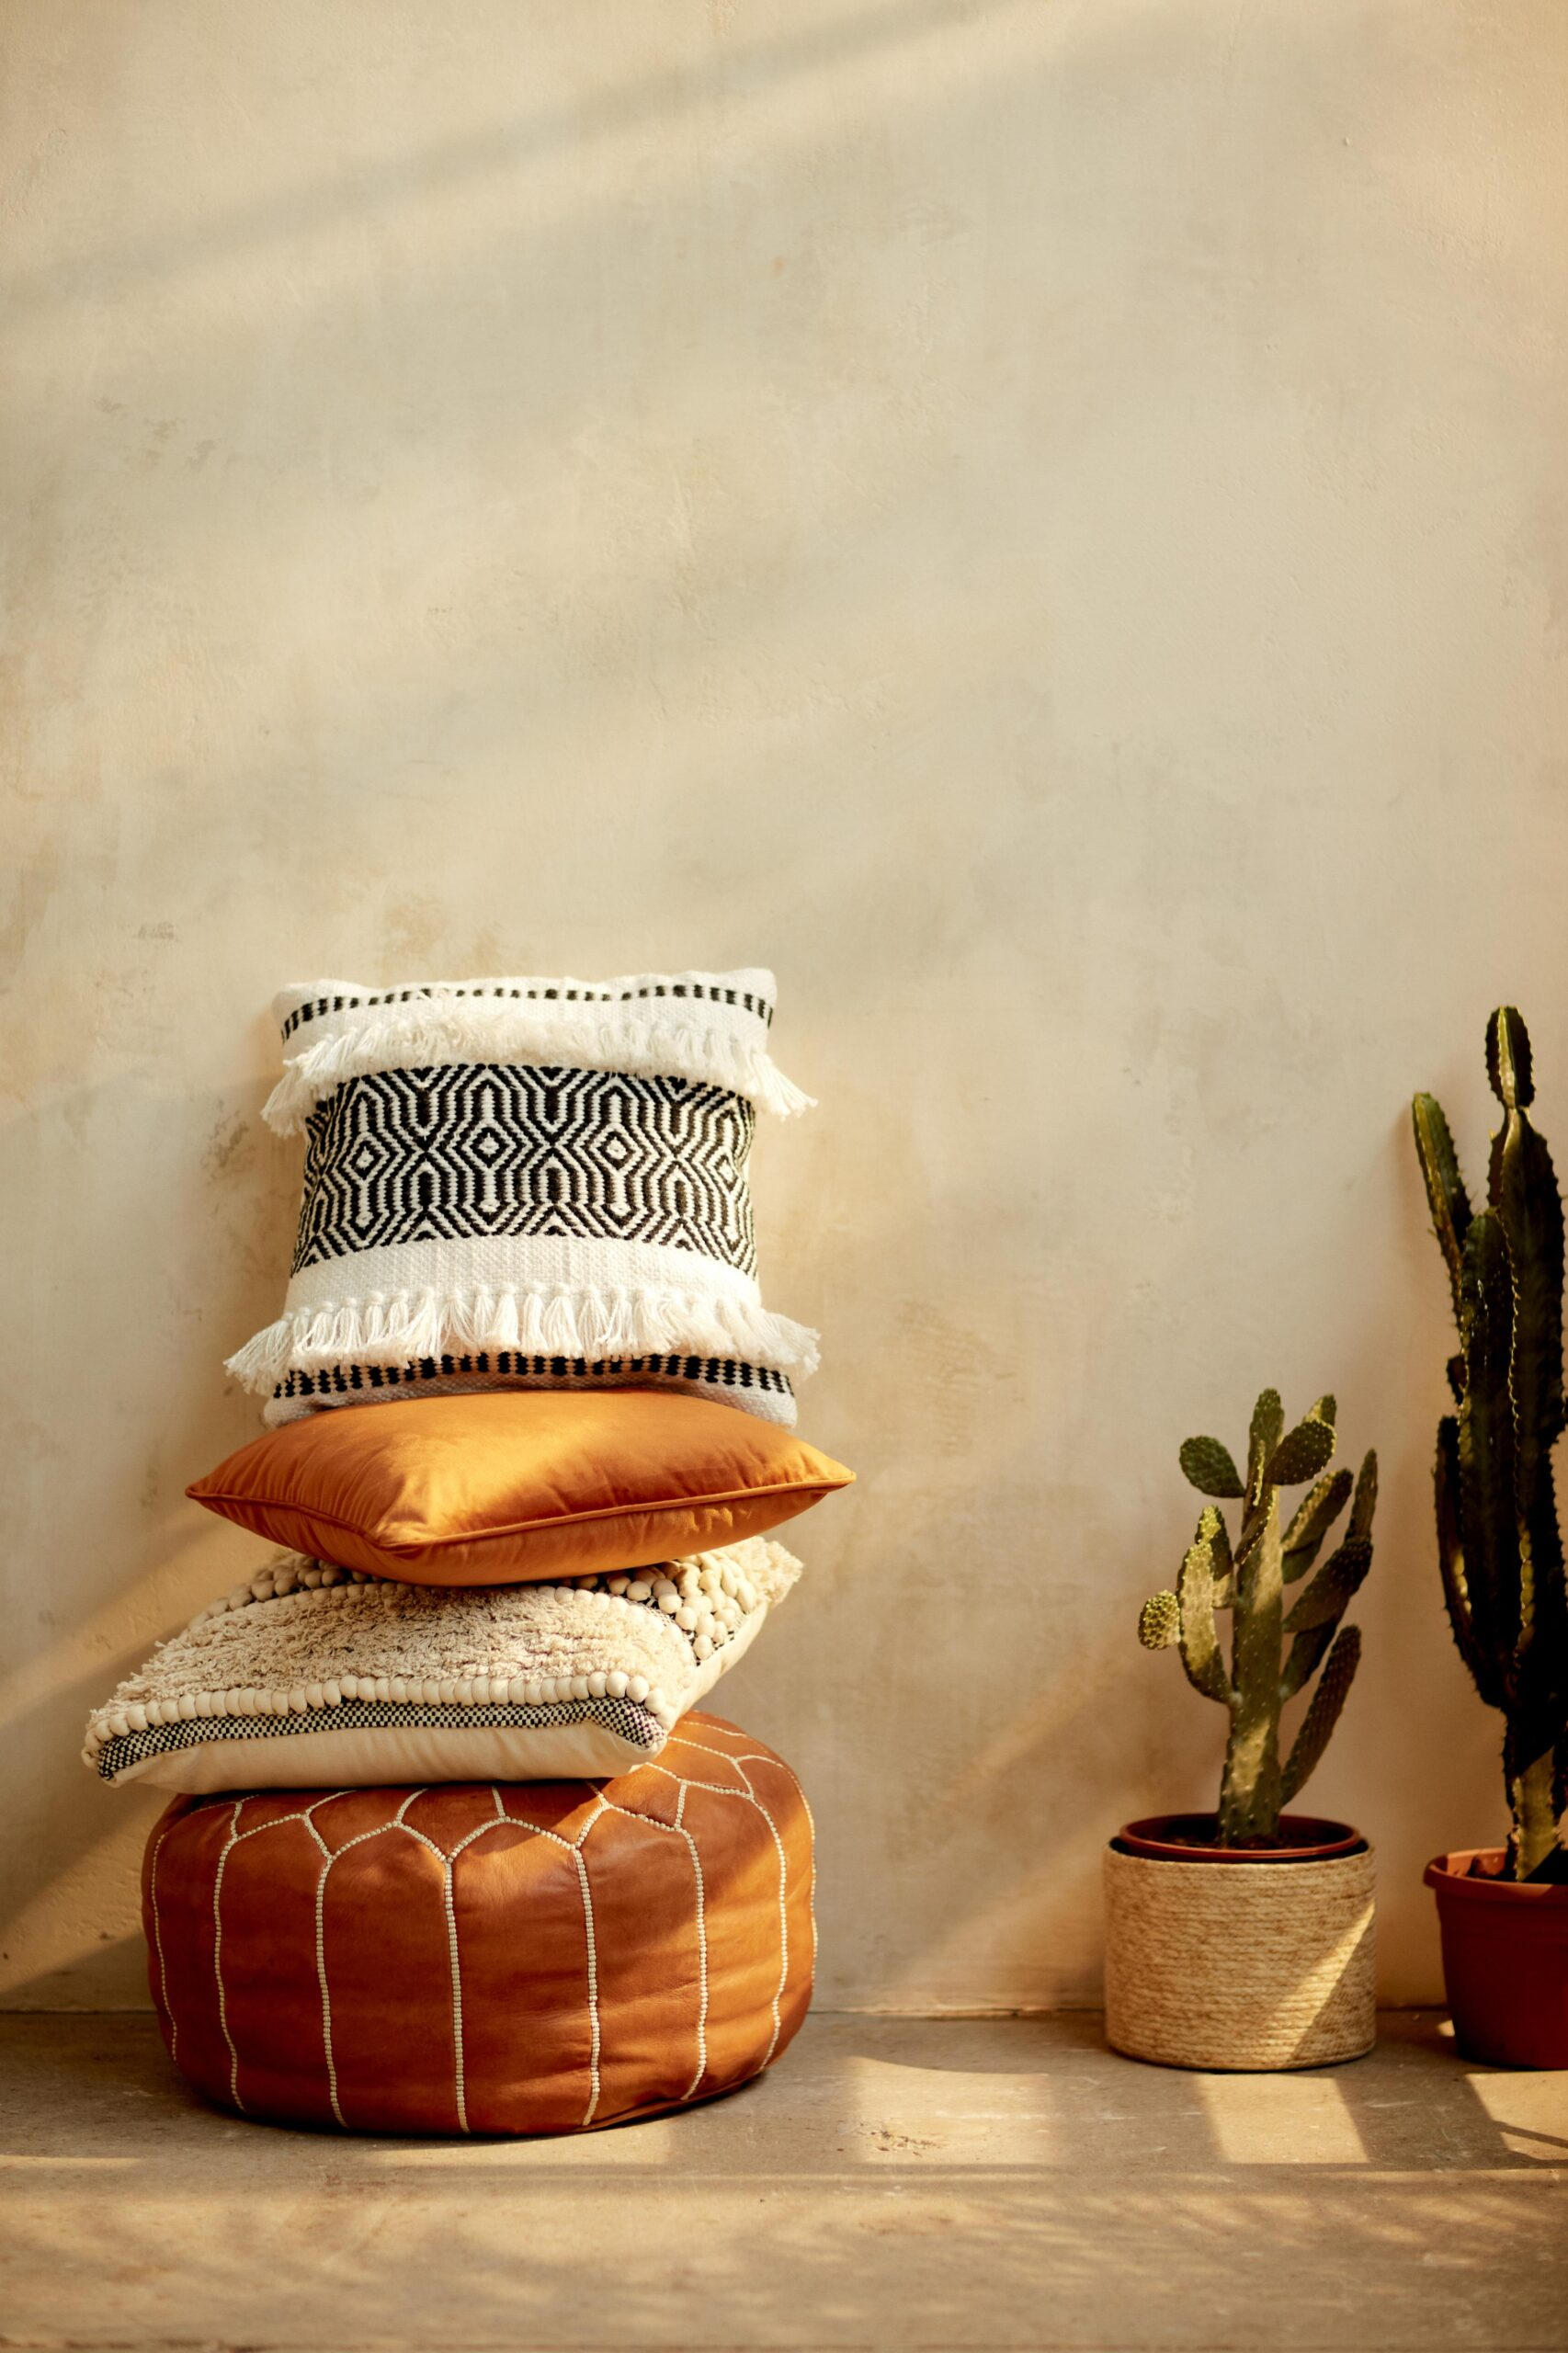 Cushions from Primark piled on a pouffe